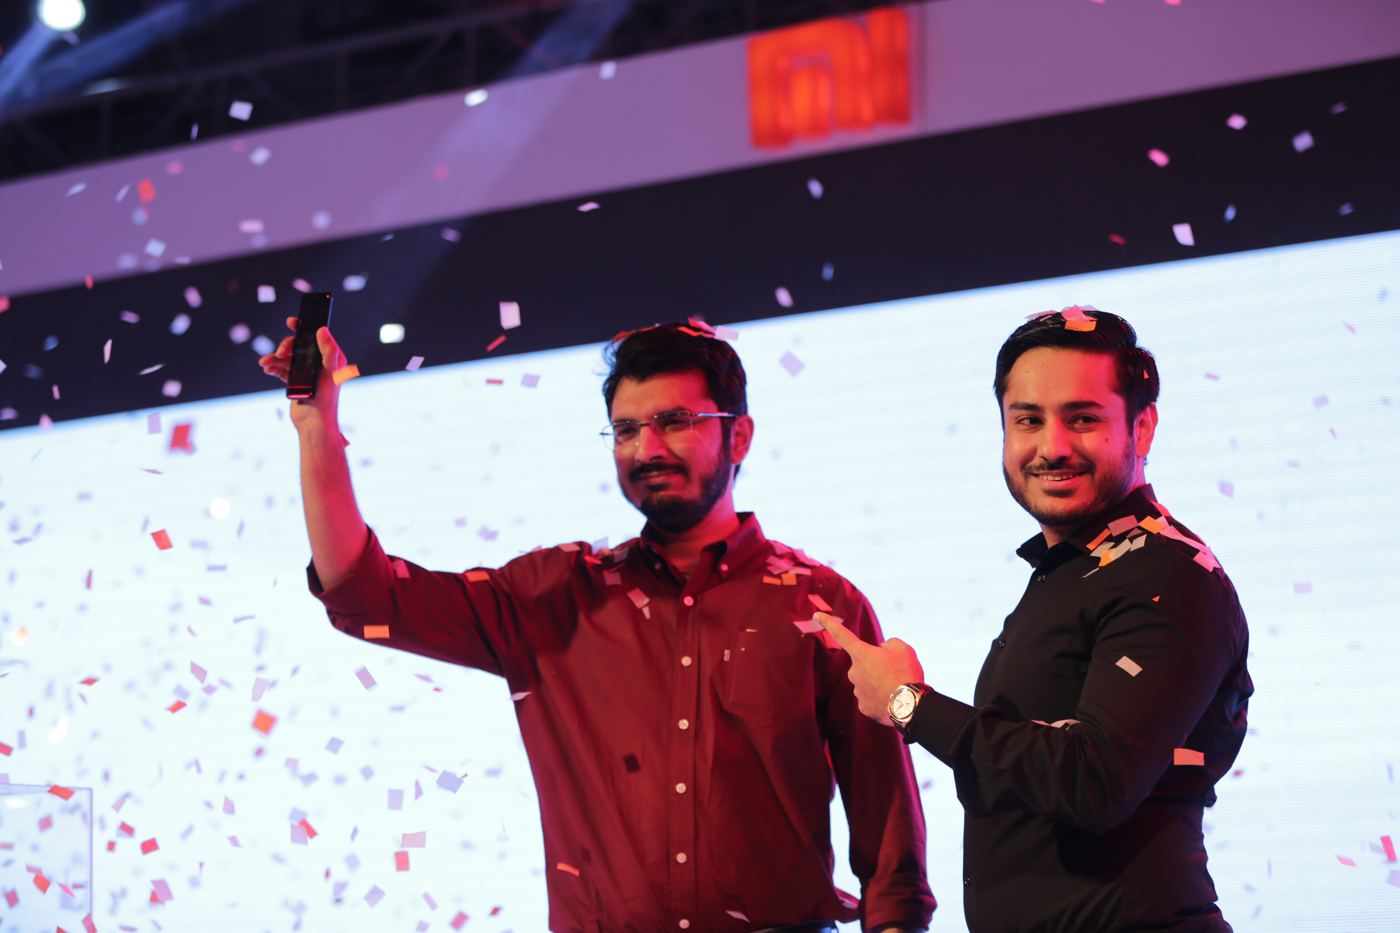 Yasir and Ahmed-Launch Of Redmi 4X in Pakistan- Event by Mooroo & SmarLink Technologies2